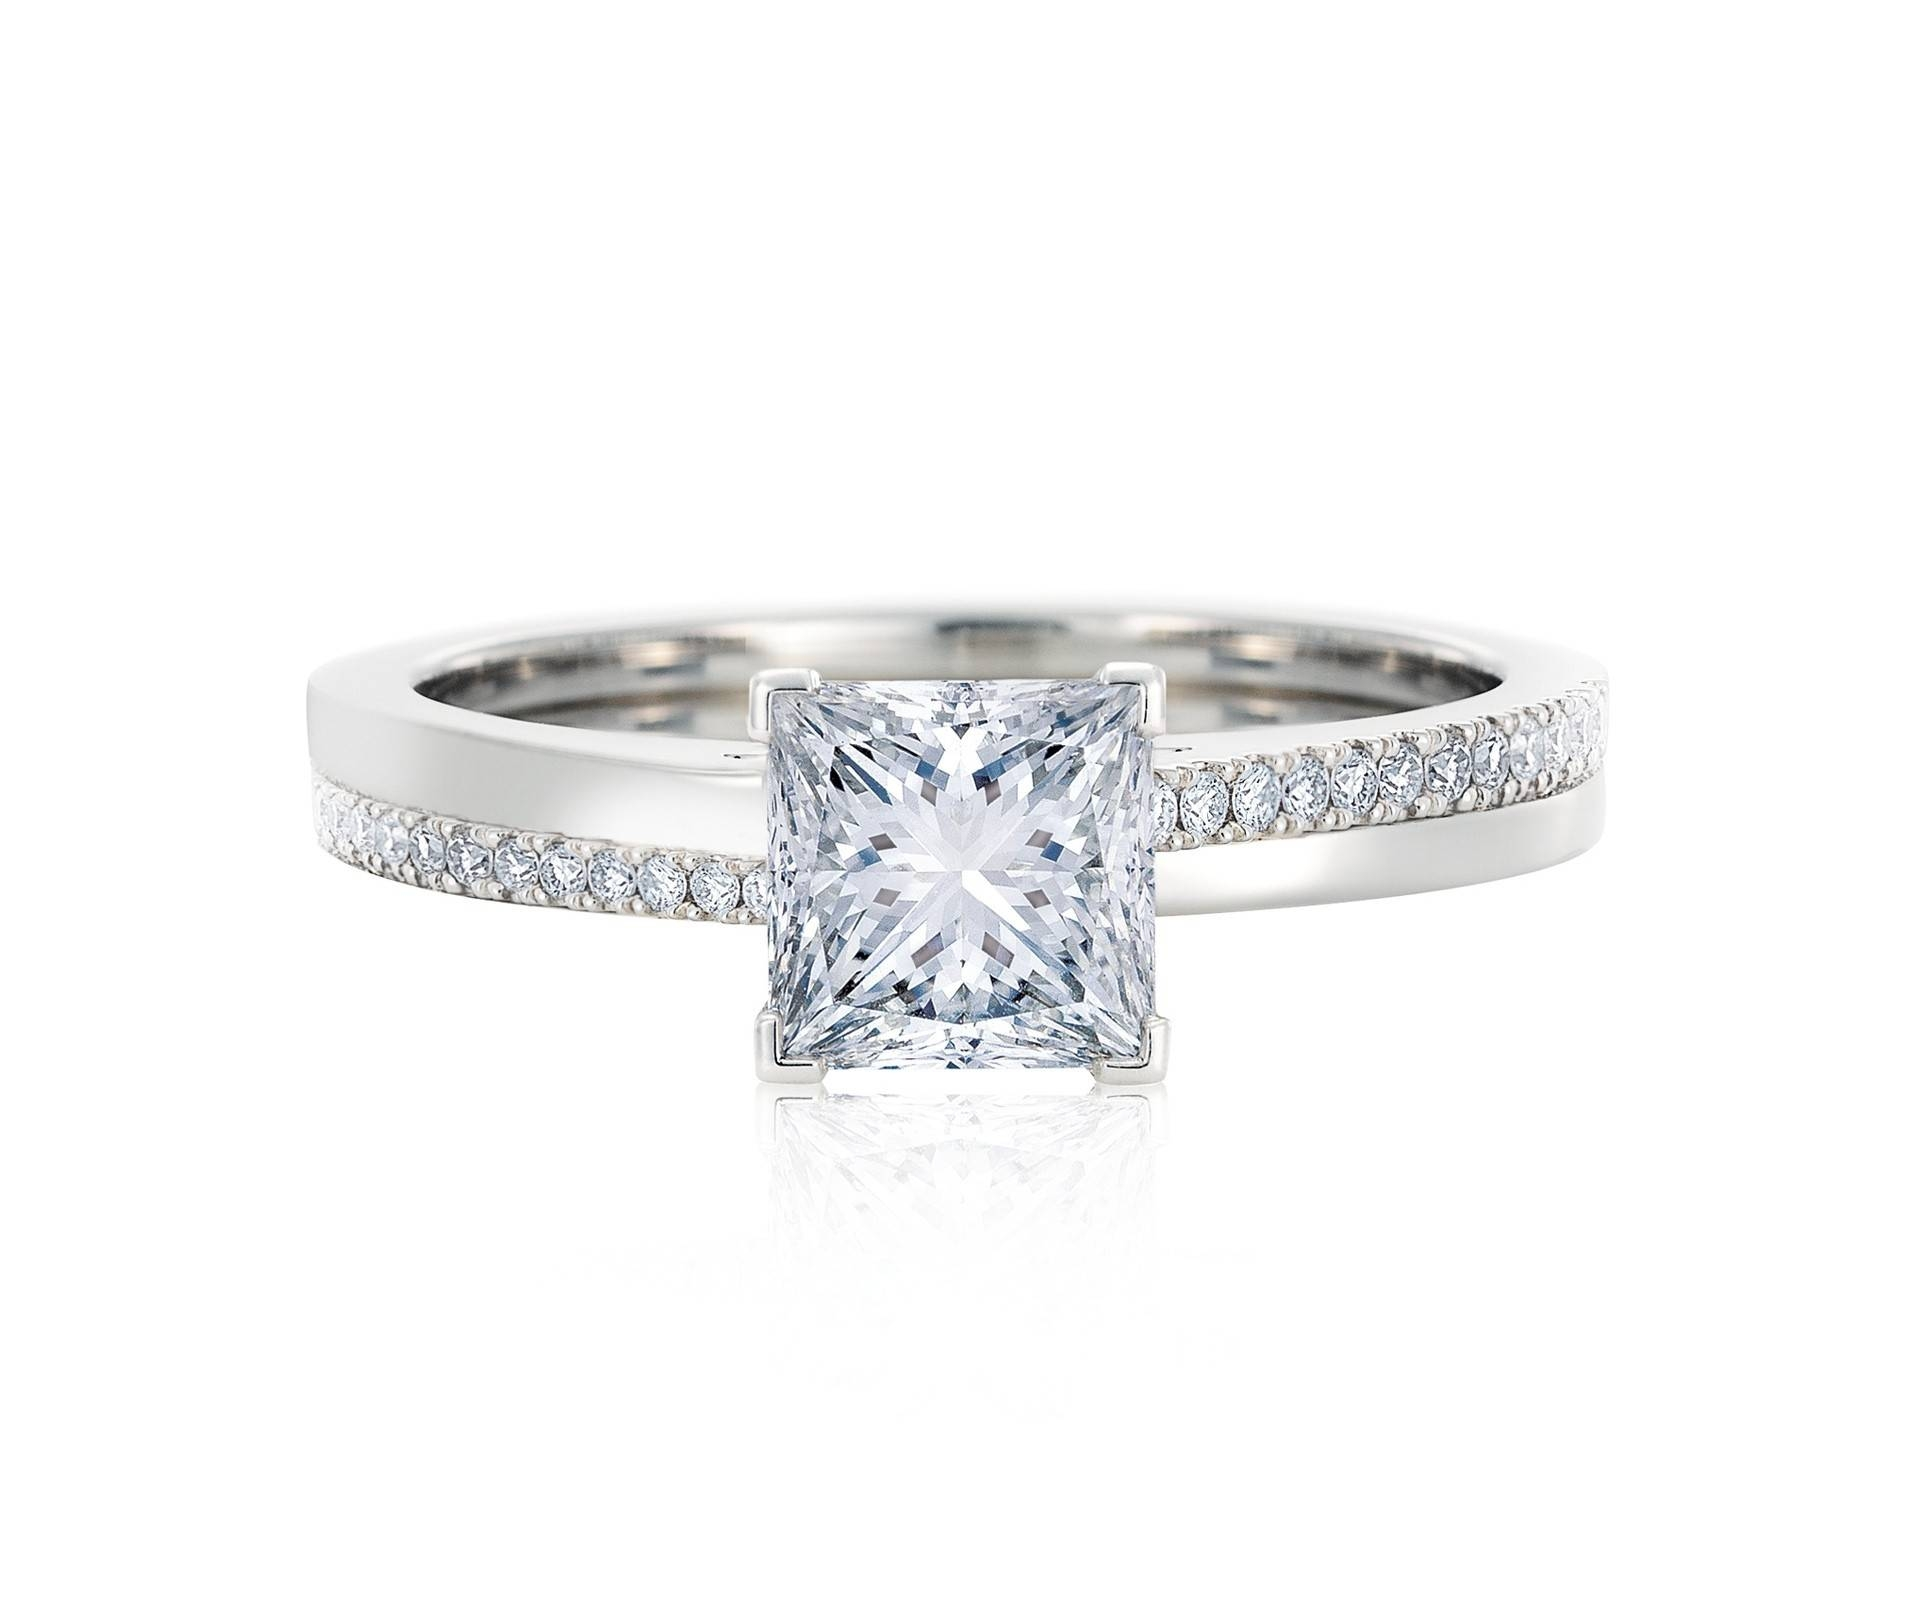 Diamond Engagement Rings & Promise Rings | De Beers Throughout Solitare Diamond Engagement Rings (View 6 of 15)